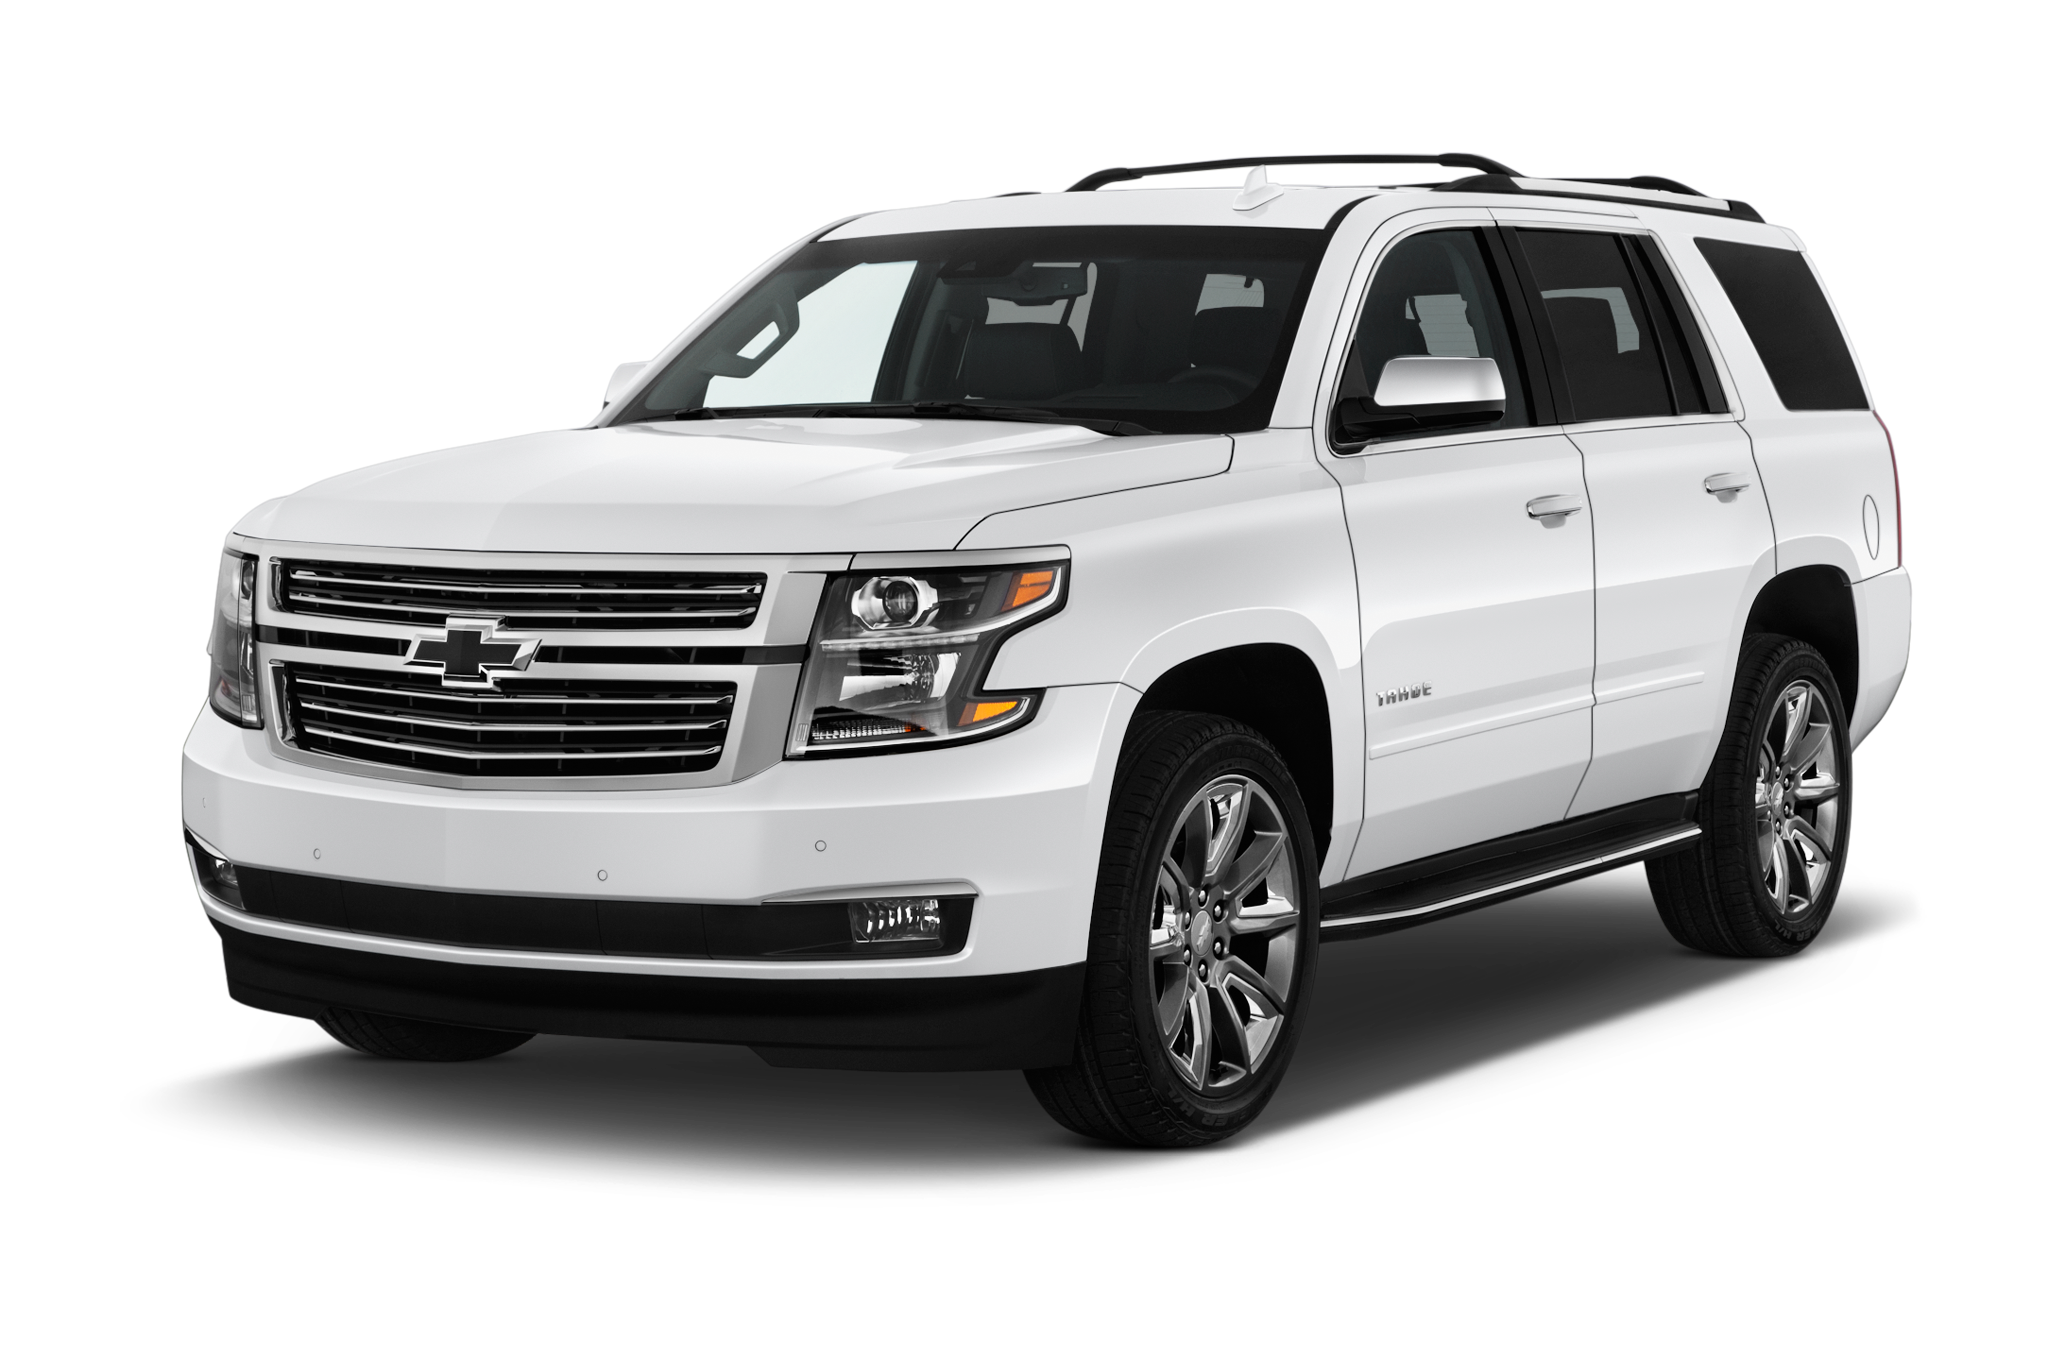 Chevrolet vector tahoe. Reviews research new used